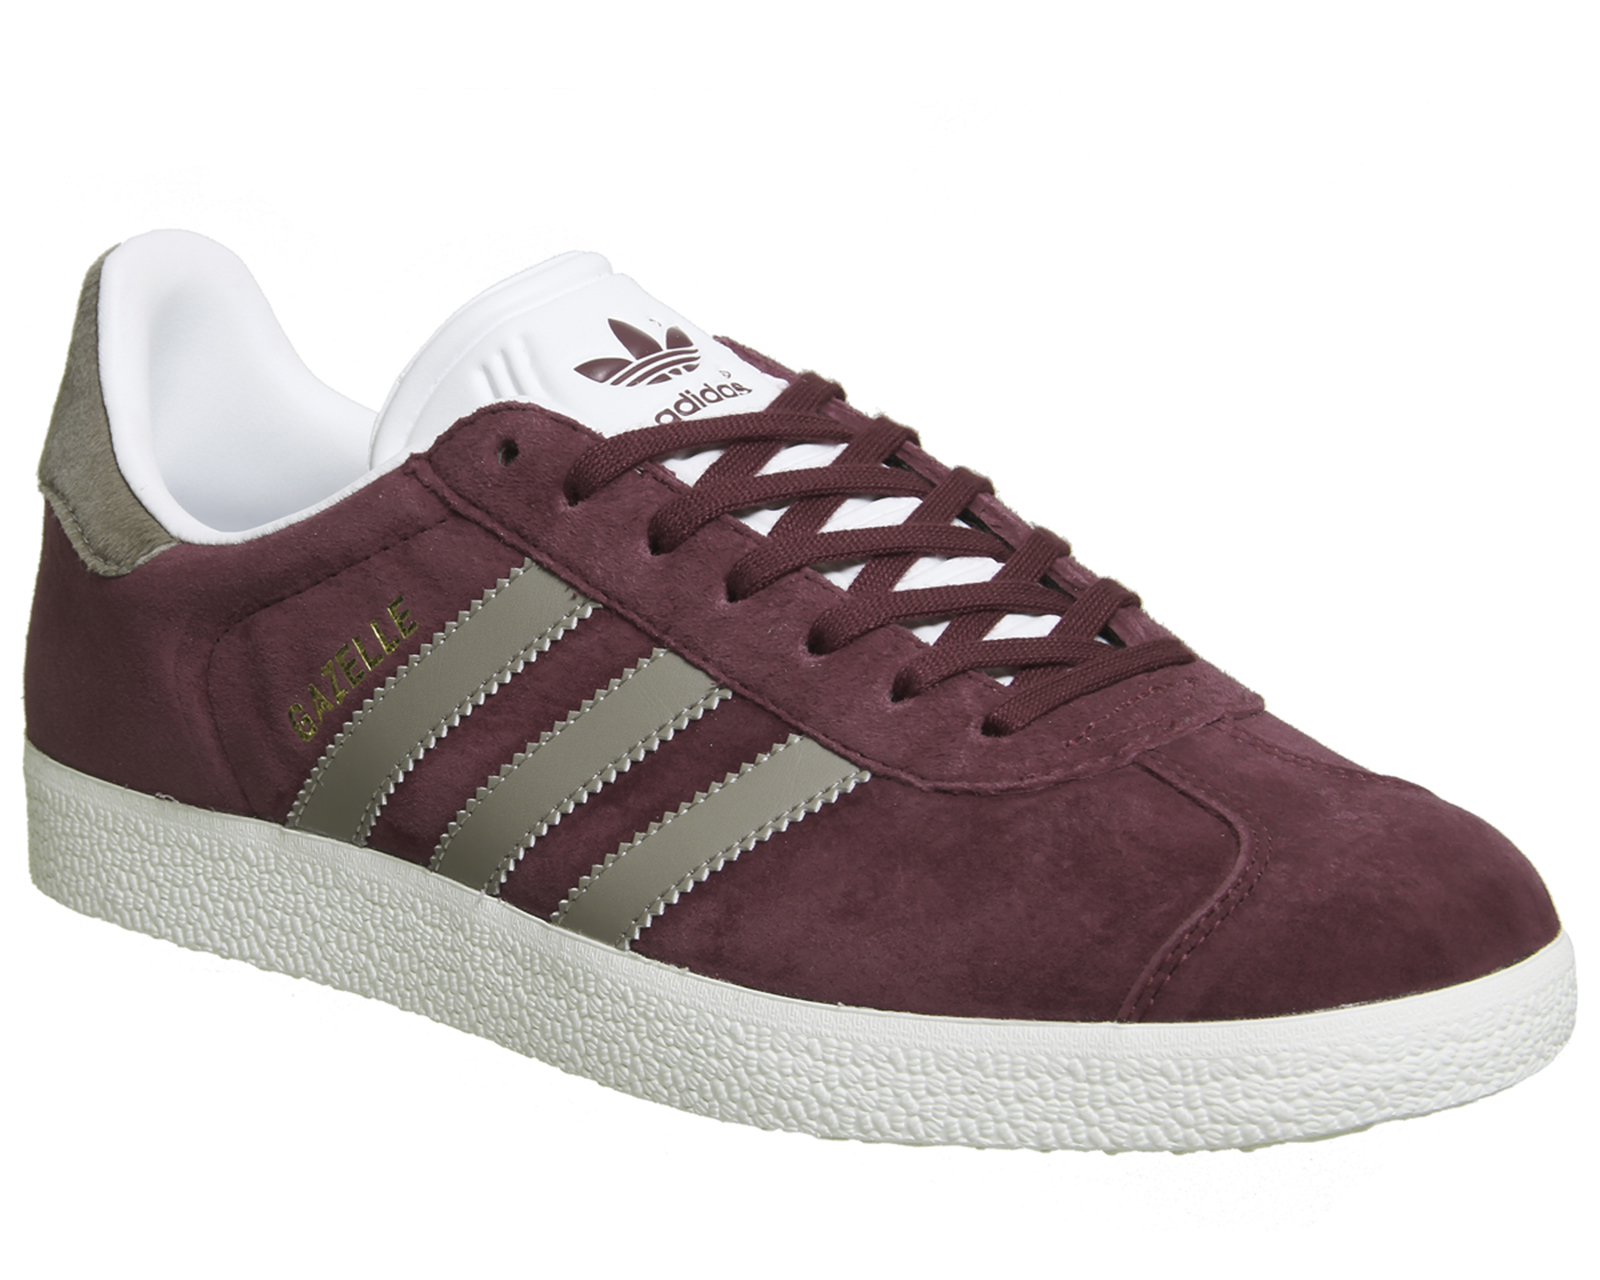 Sentinel Womens Adidas Gazelle Trainers COLLEGIATE BURGUNDY VAPOUR GREY  Trainers Shoes 00be304ac